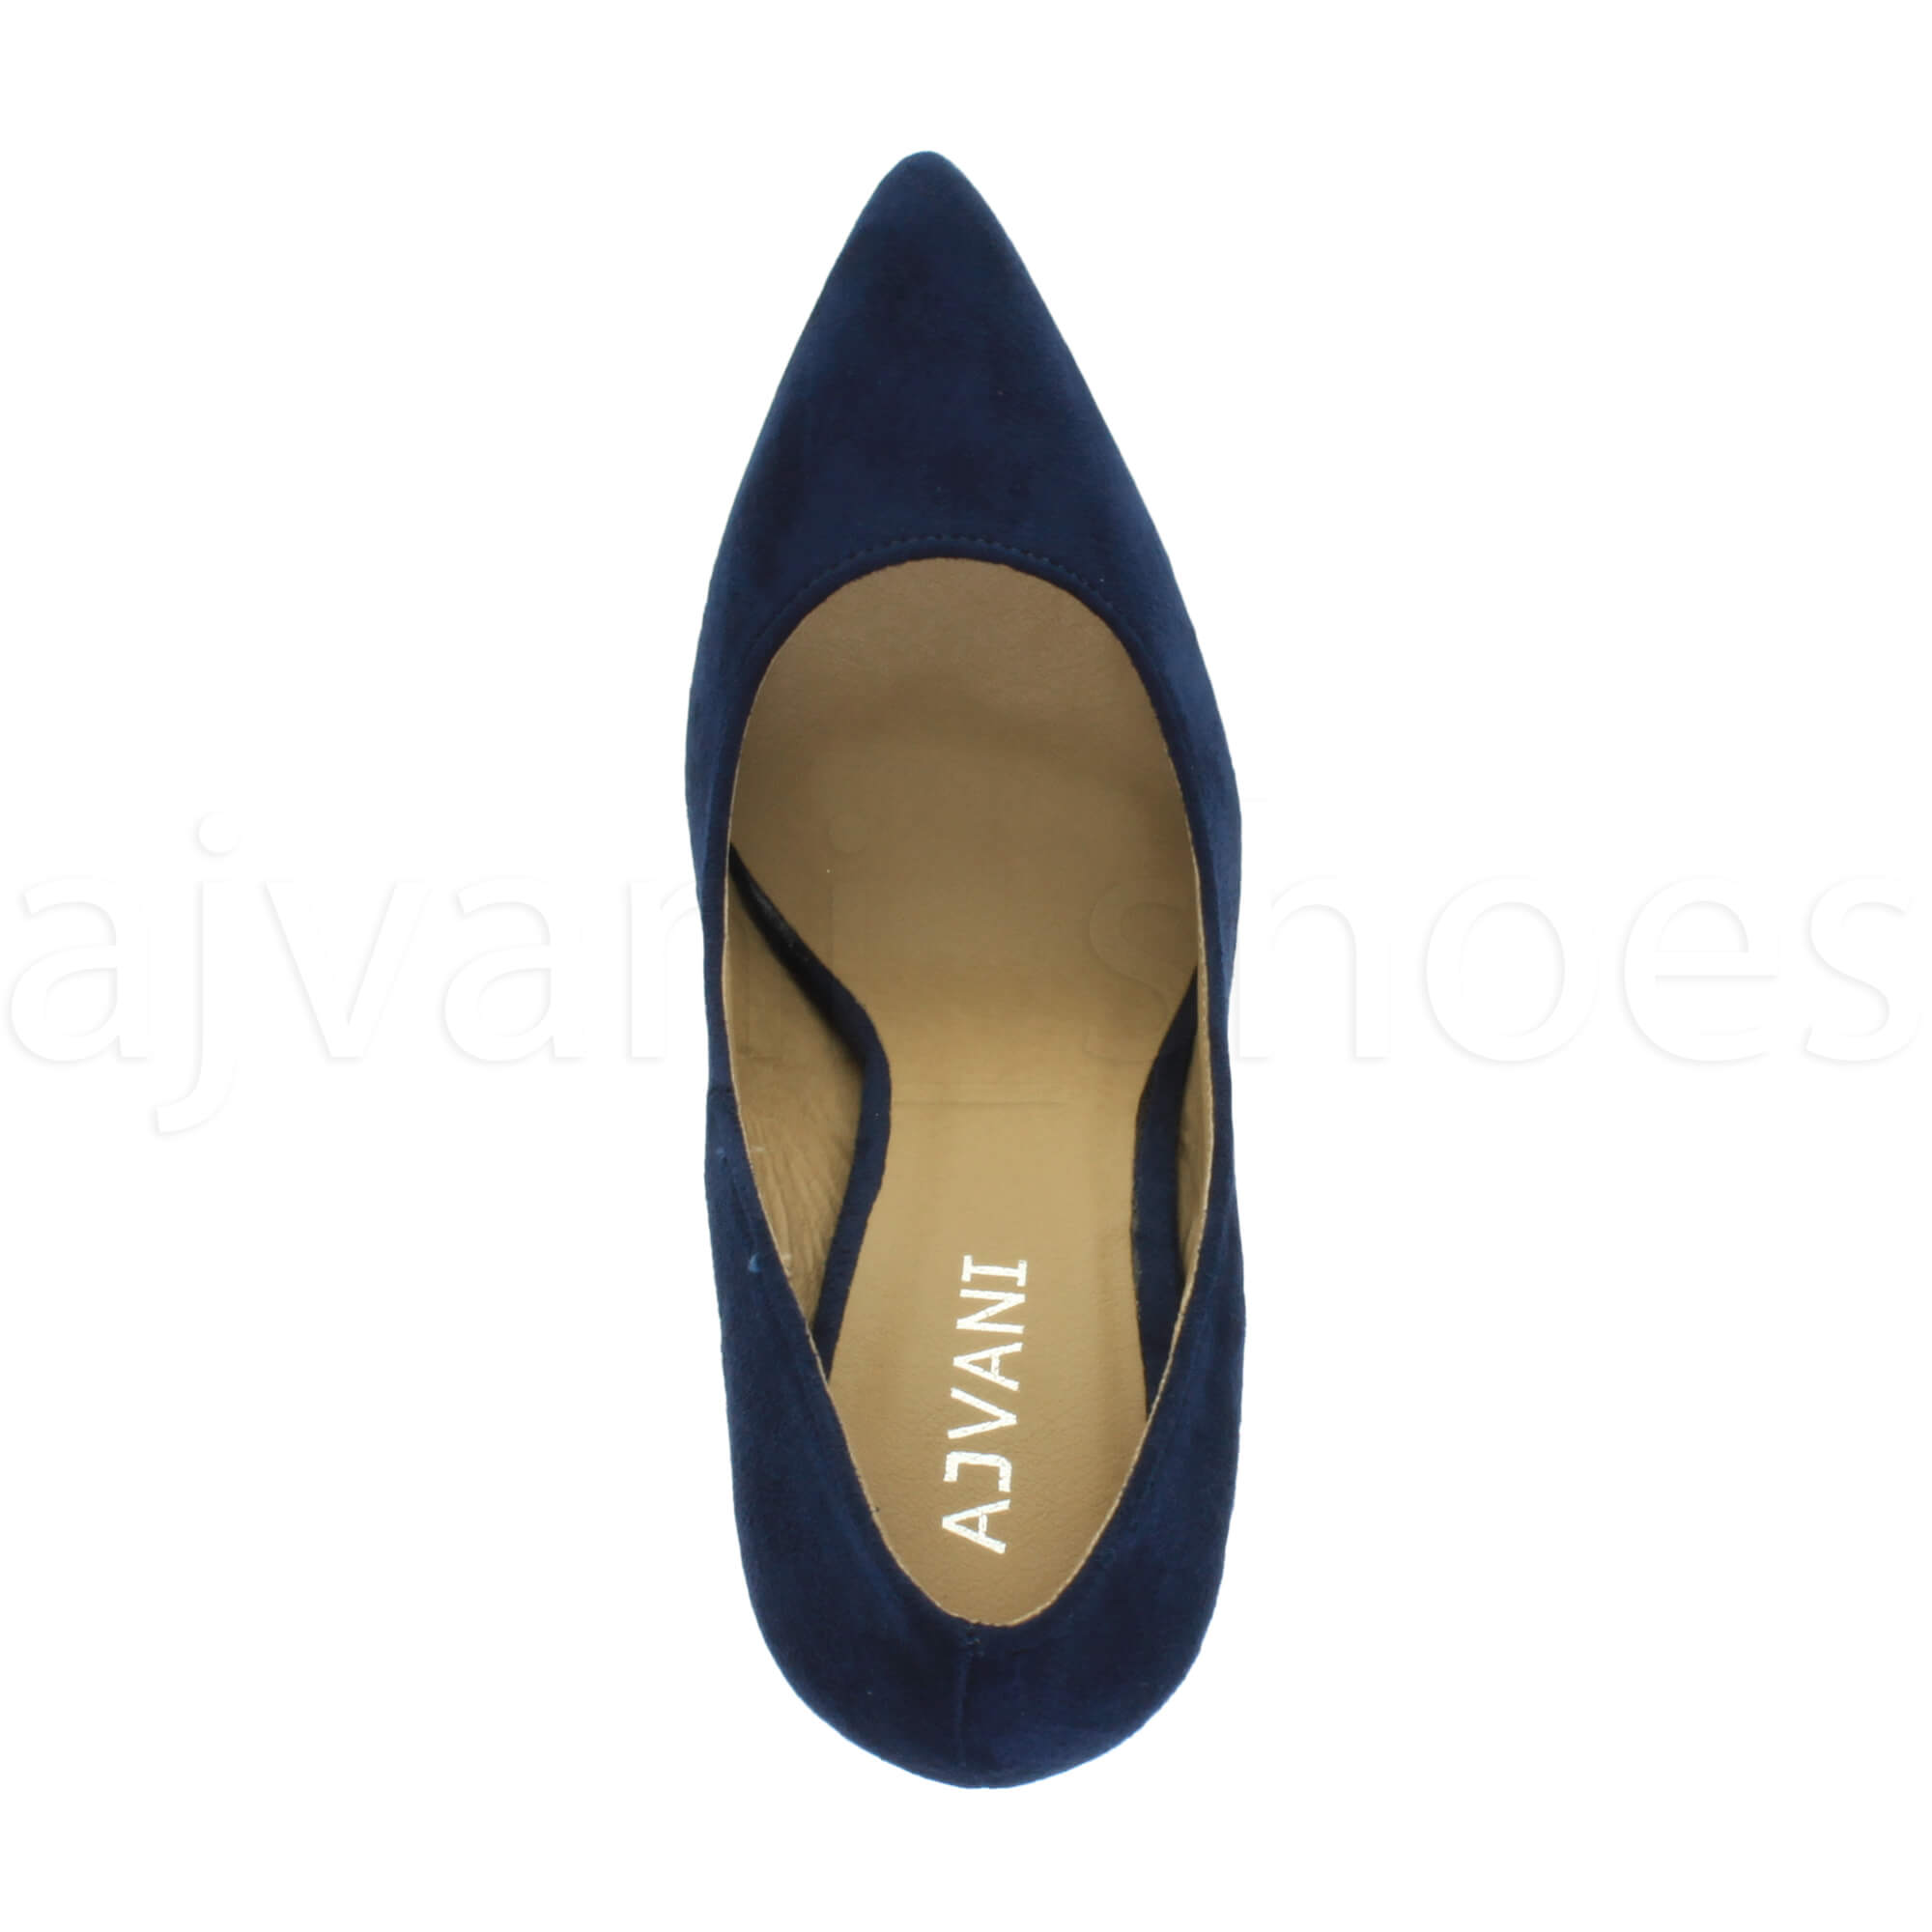 WOMENS-LADIES-HIGH-HEEL-POINTED-CONTRAST-COURT-SMART-PARTY-WORK-SHOES-PUMPS-SIZE thumbnail 55